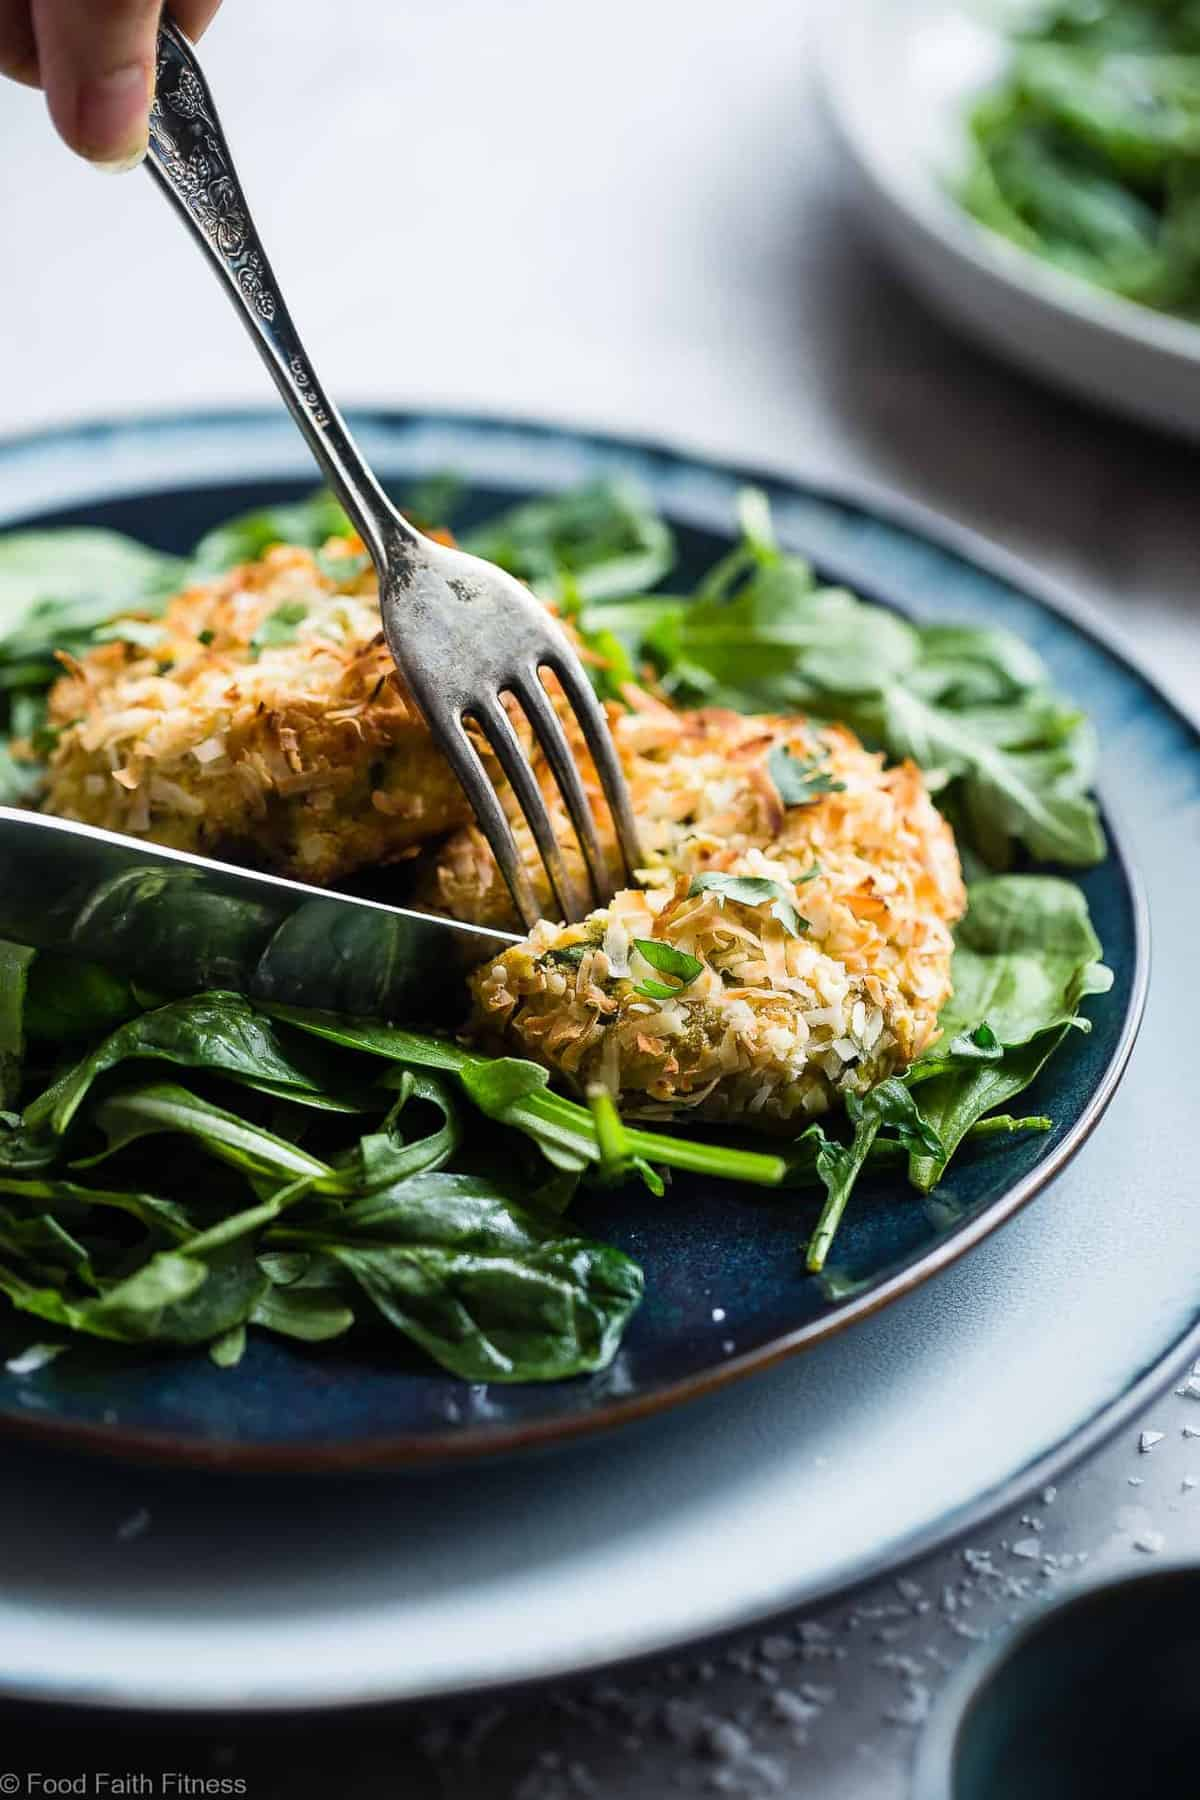 Low Carb Whole30 Paleo Salmon Cakes | Food Faith Fitness